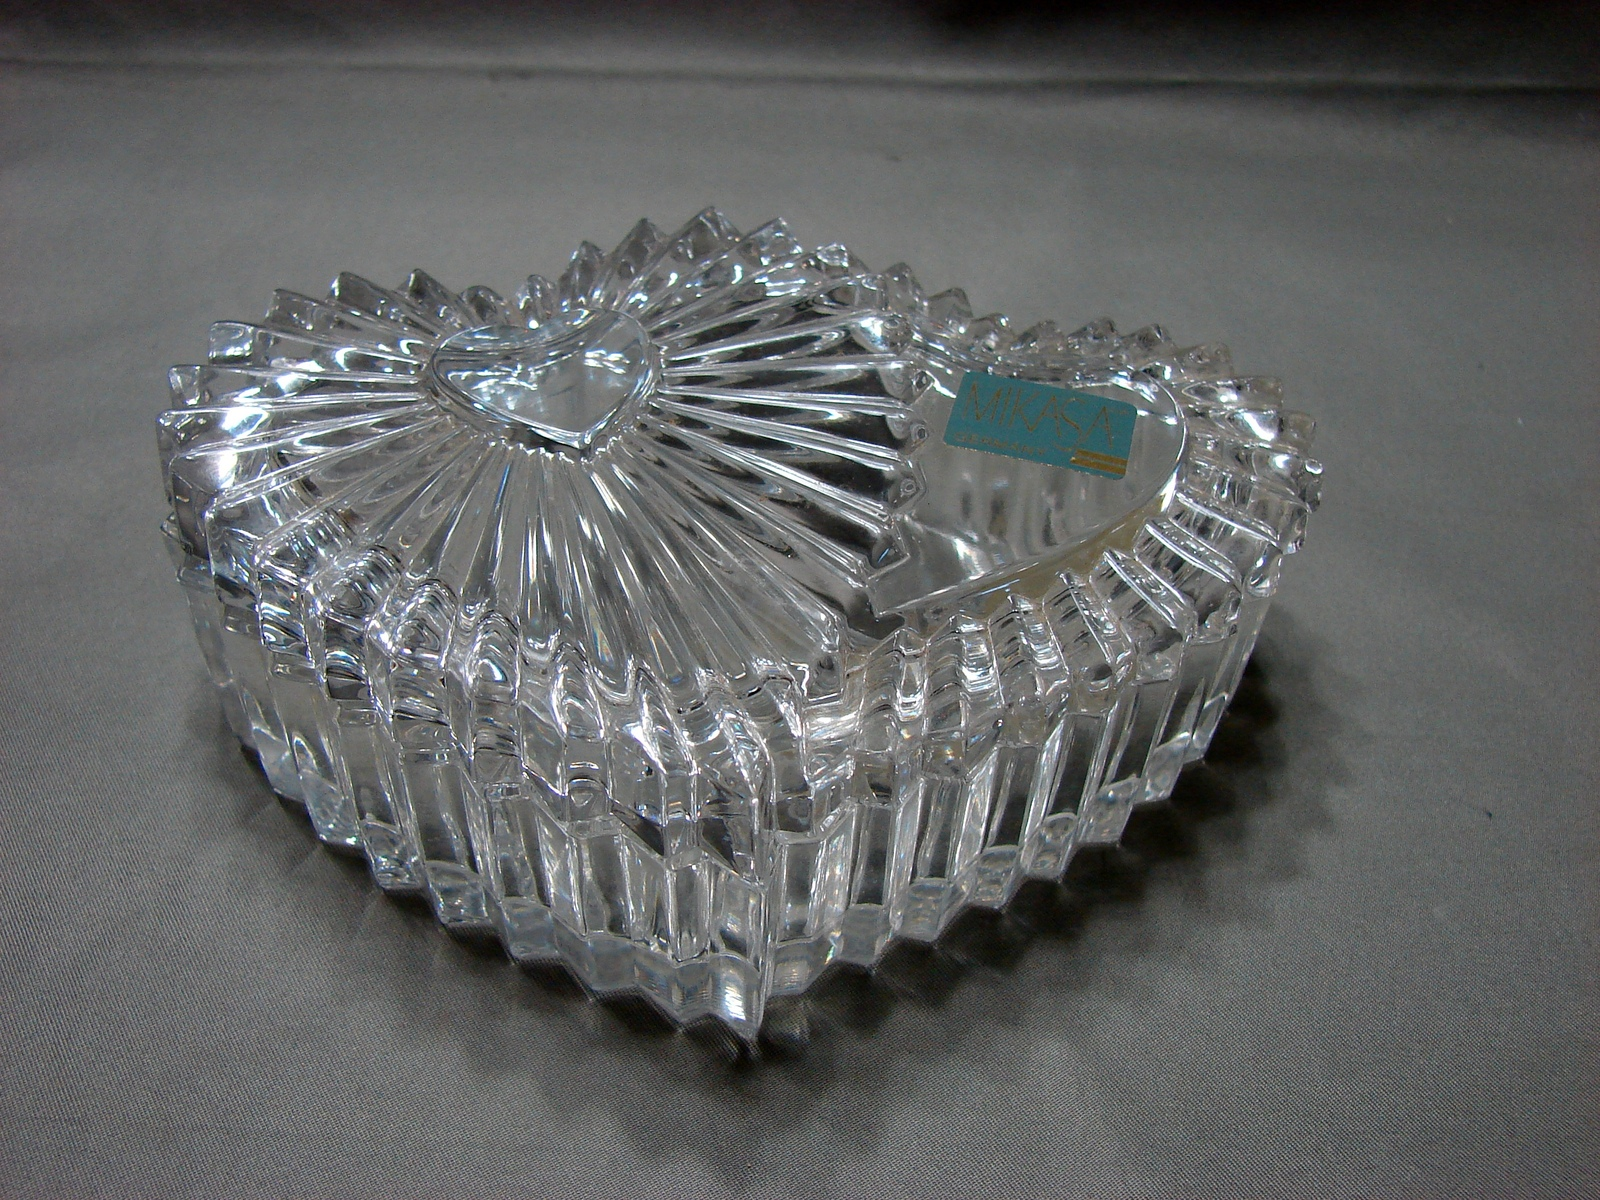 Mikasa Collectible Heart Shaped Glass Trinket Box / Jewelry Dish With Lid image 3